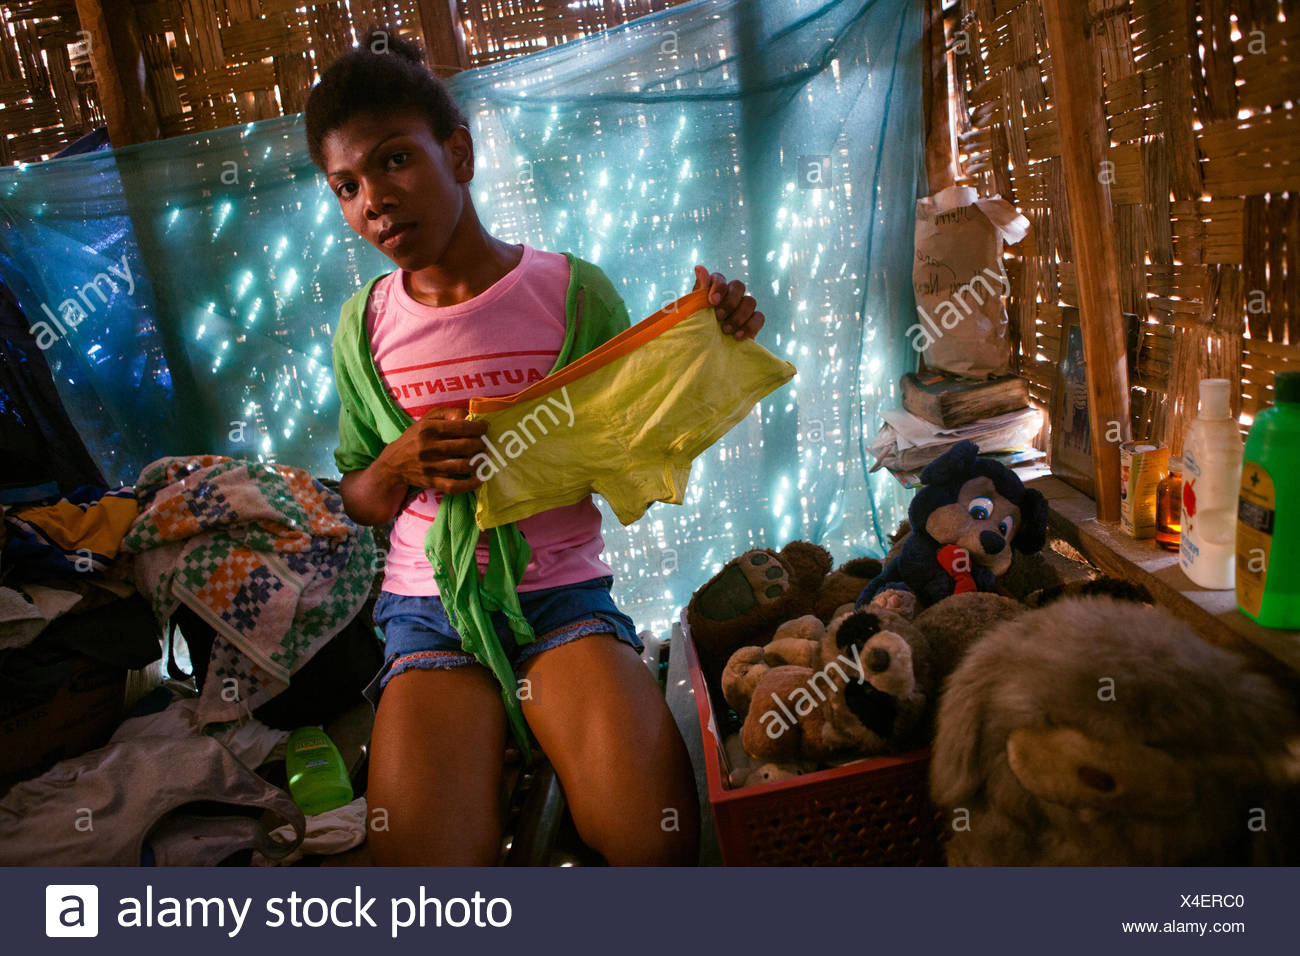 Alvina, formerly Alvin, a transgendered male Ayta holds up a pair of shorts. Access to mainstream media and the influence of popular transgendered people on television have helped the community become more accepting of their two transgendered members. - Stock Image